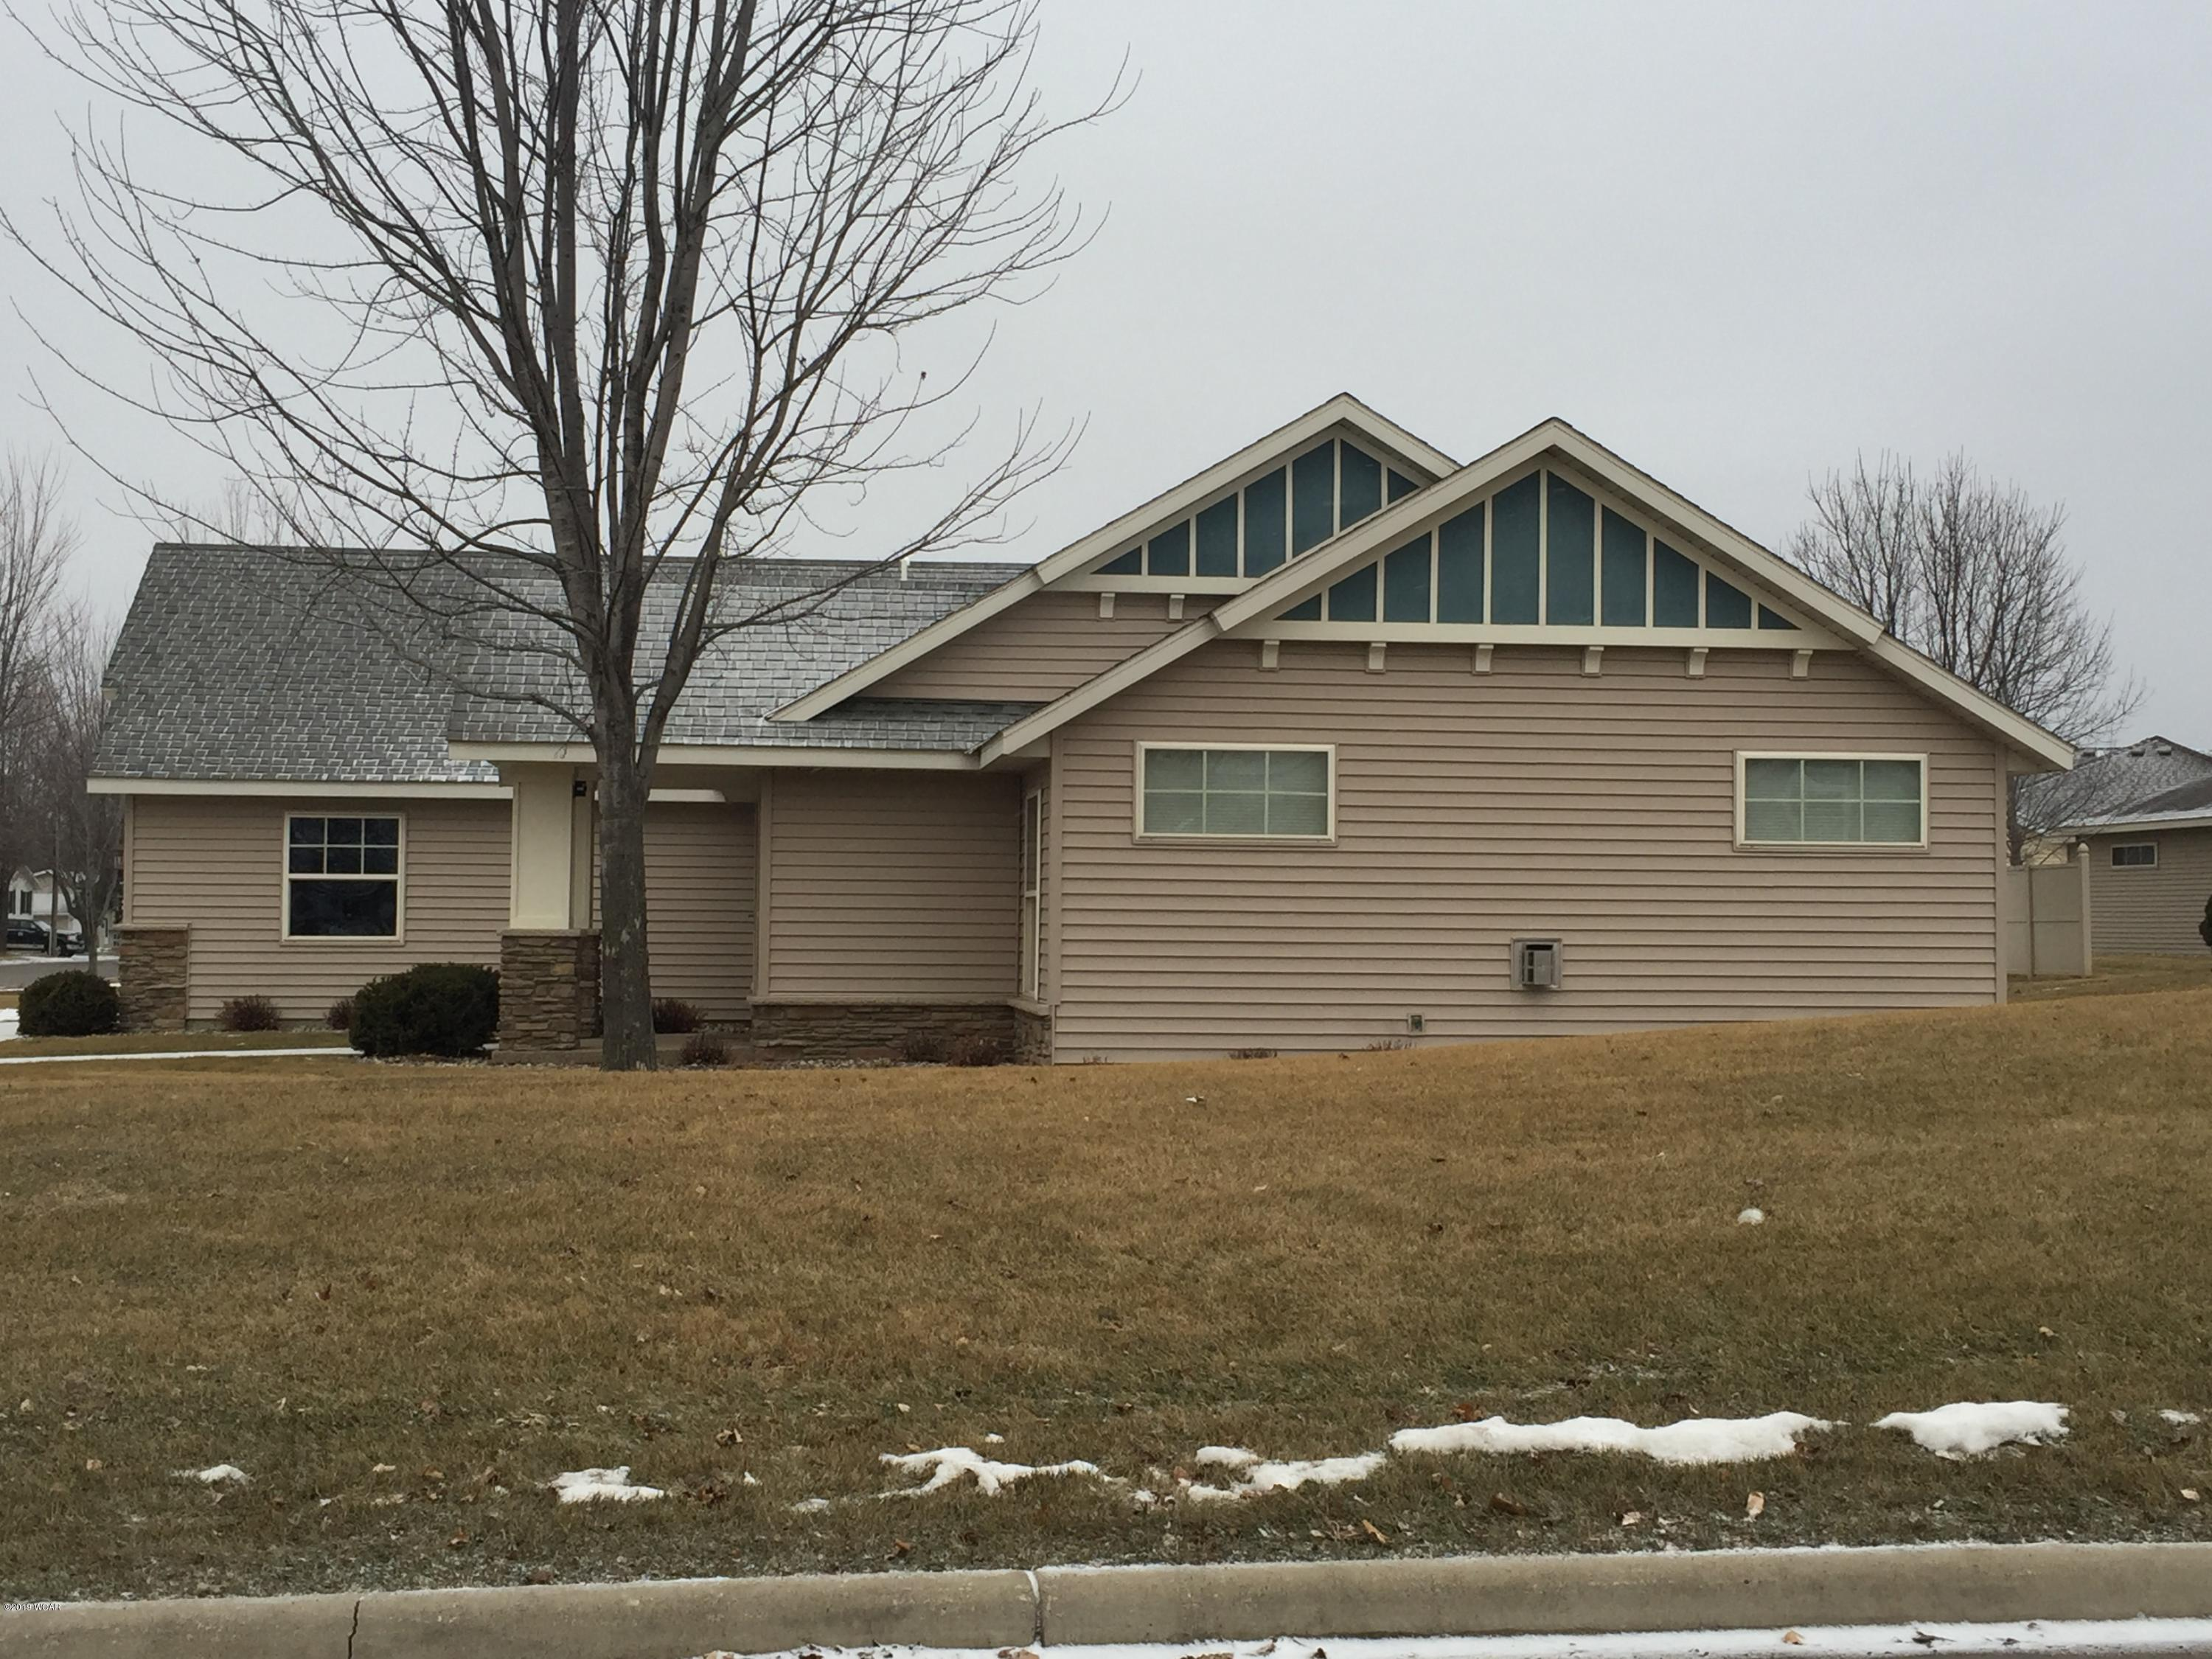 913 17th Street,Willmar,2 Bedrooms Bedrooms,2 BathroomsBathrooms,Single Family,17th Street,6033242